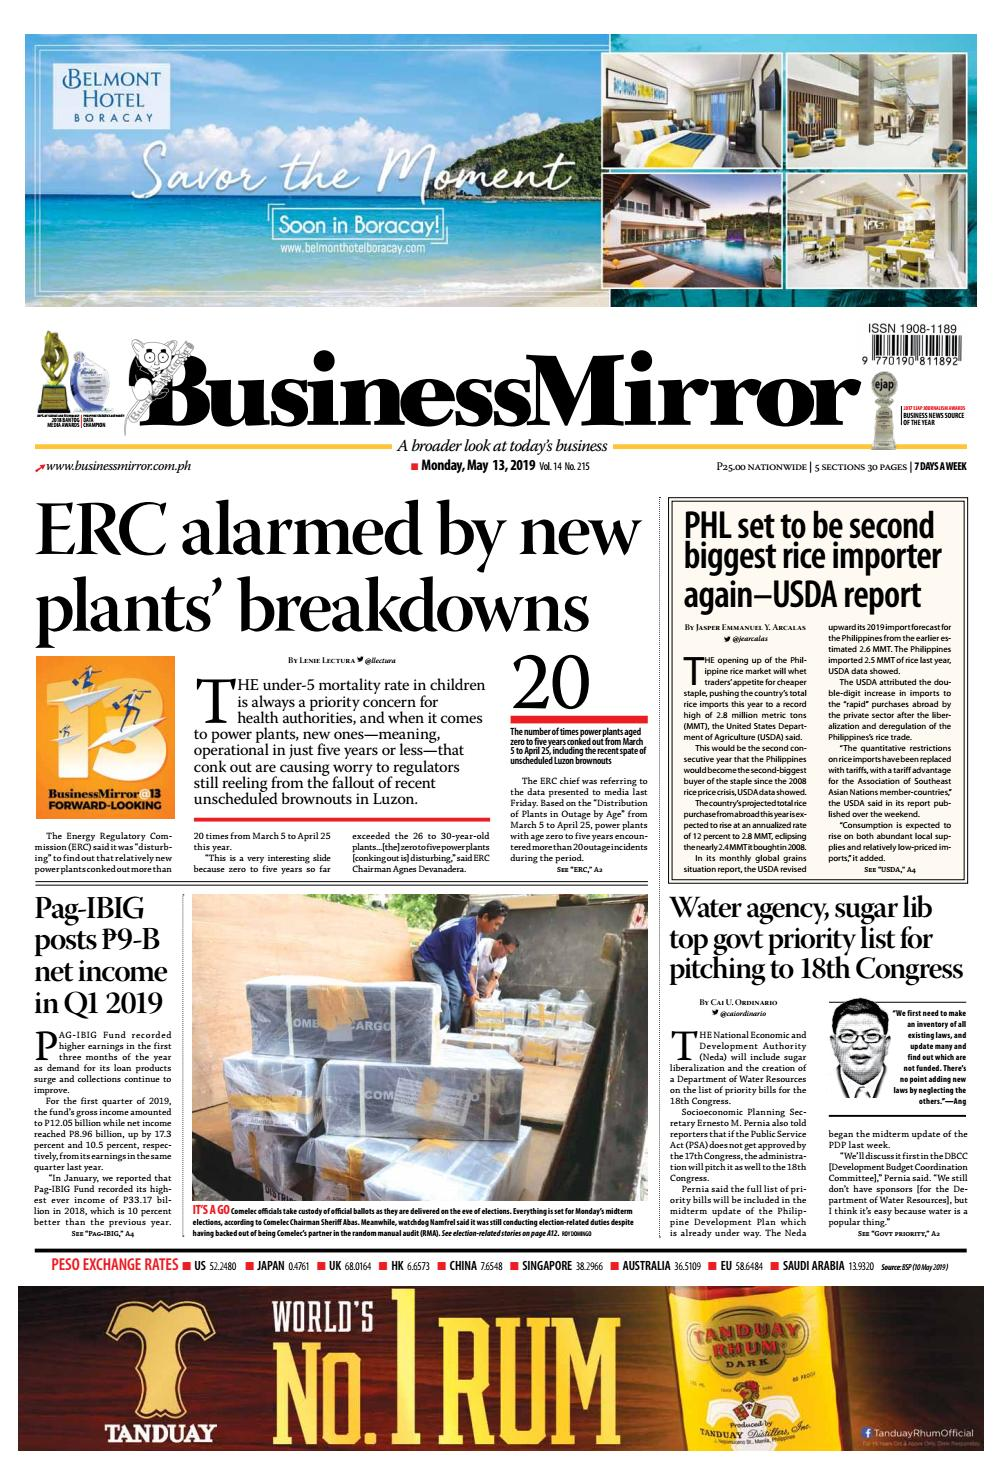 BusinessMirror May 13, 2019 by BusinessMirror - issuu